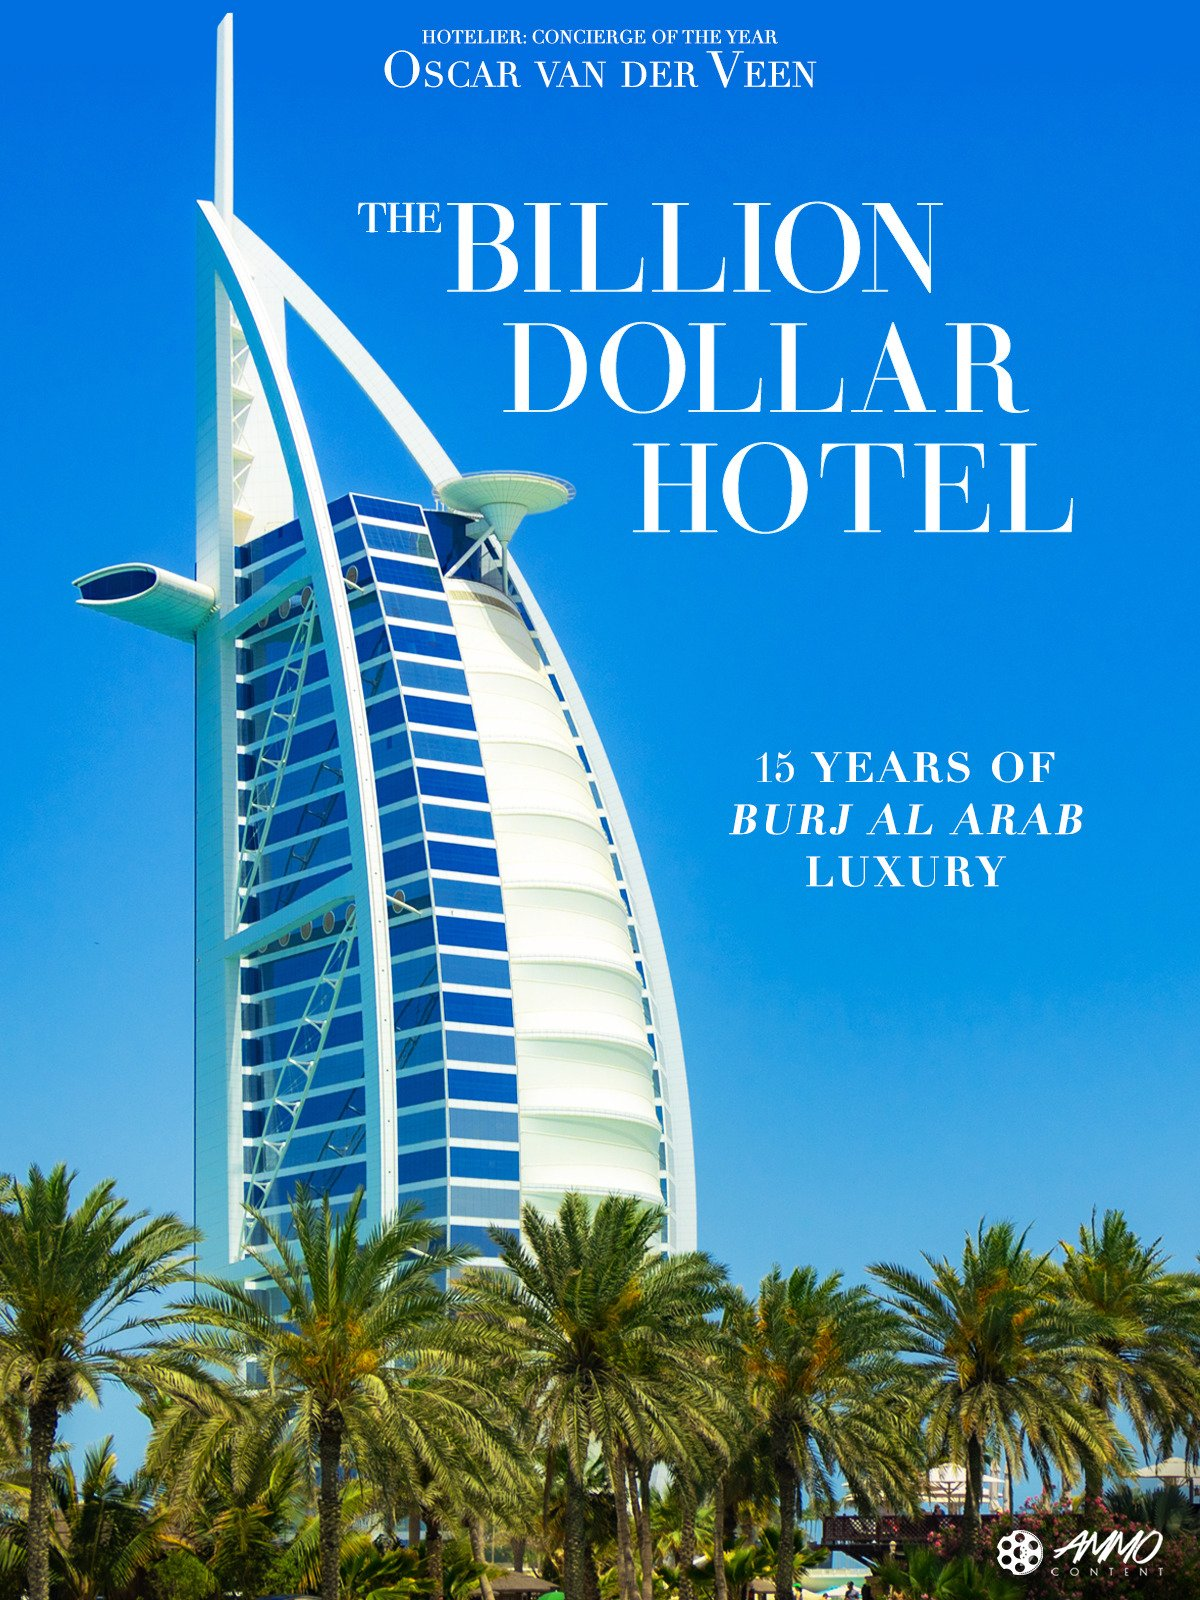 Amazon.com: The Billion Dollar Hotel: Oscar Van Der Veen, Oscar ...